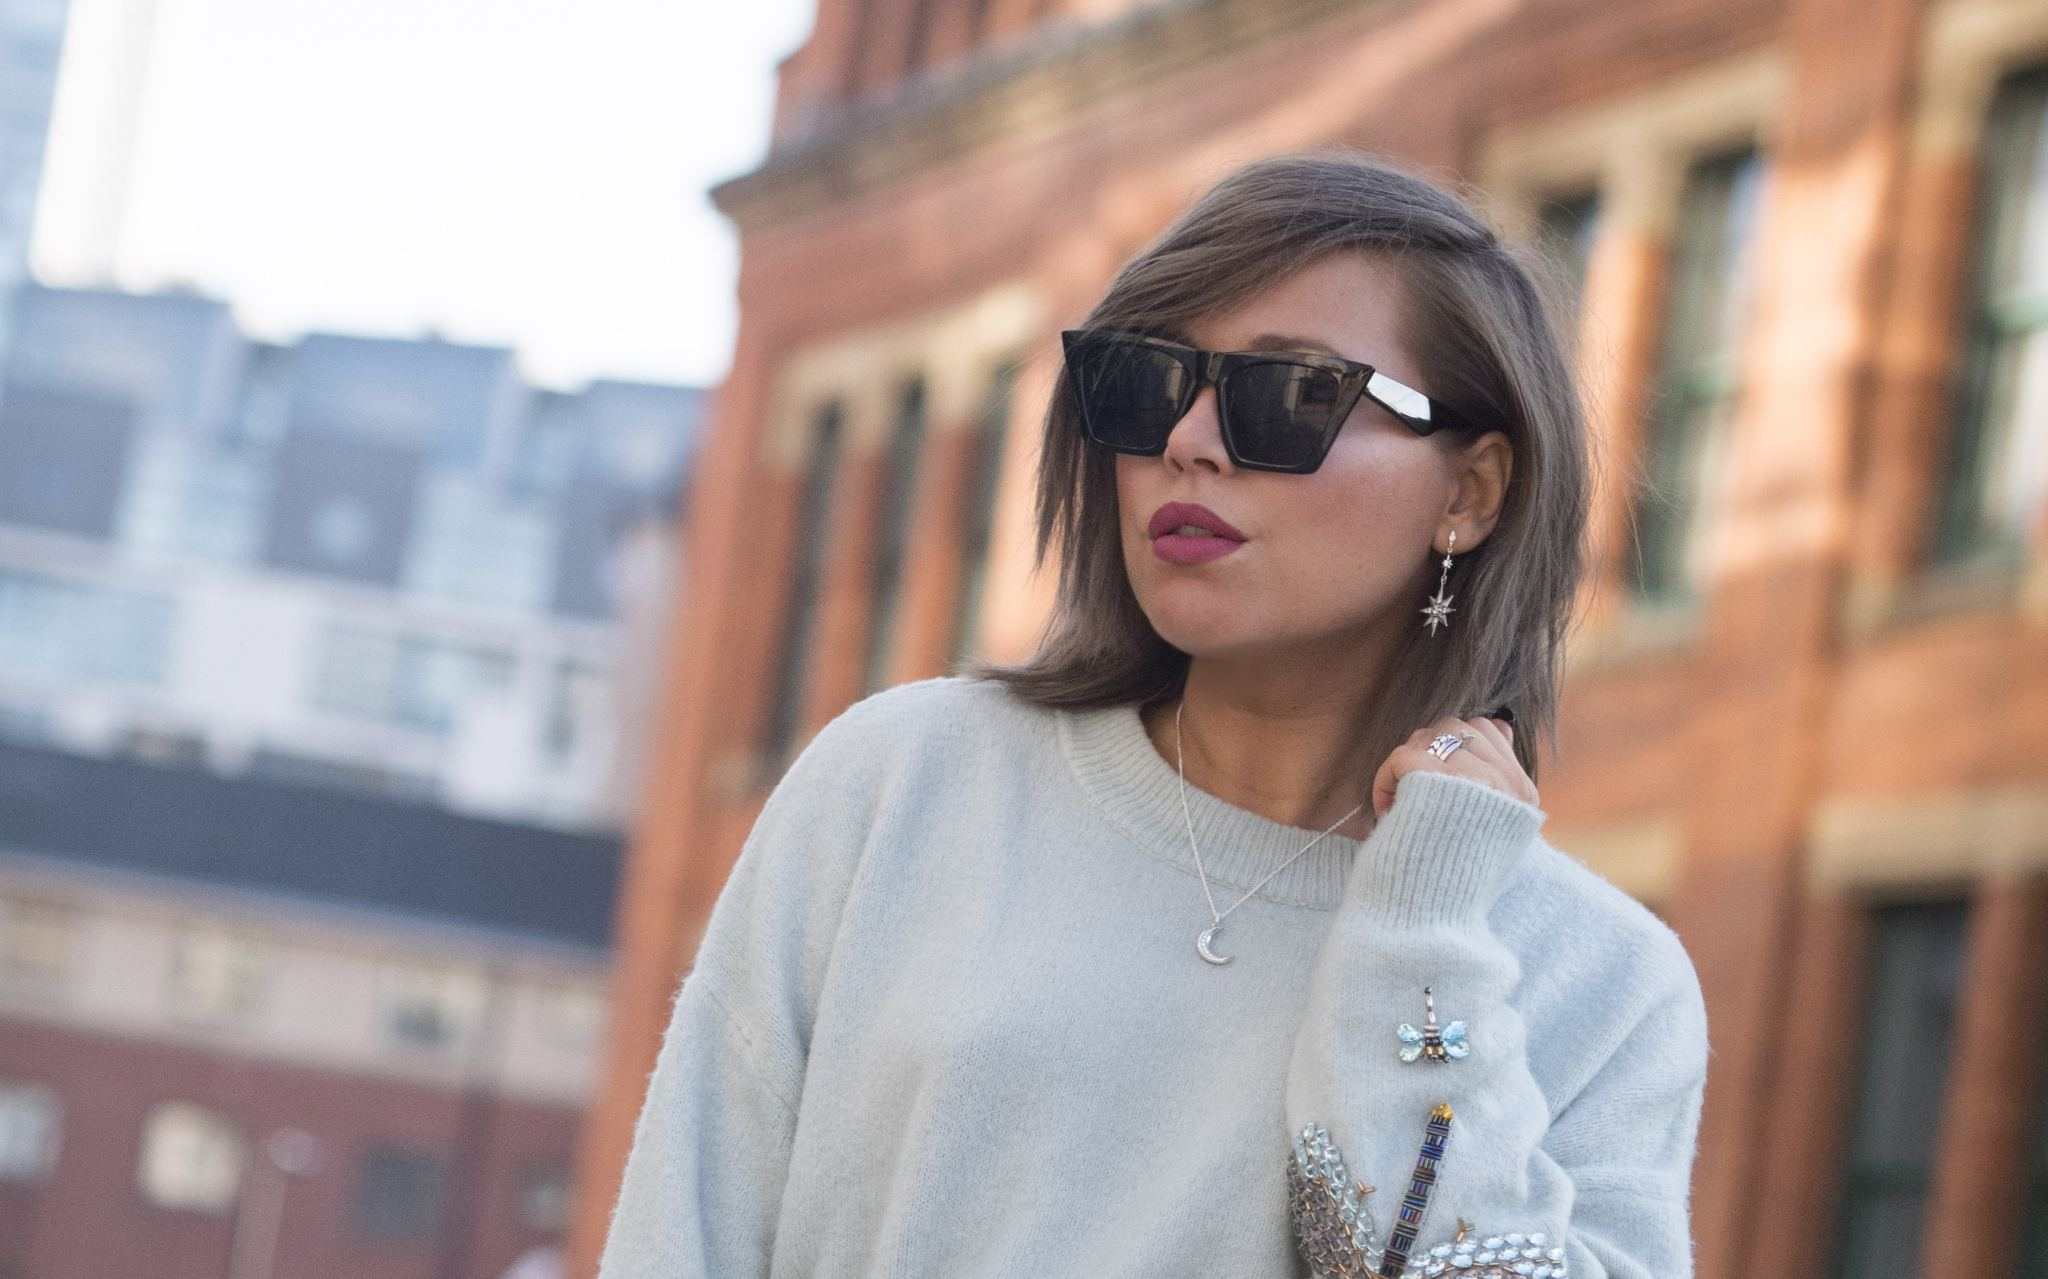 manchester fashion blogger, manchester fashion bloggers, ukblogger, thomsa sabo, thomas sabo jewellery ,Celine sunglasses